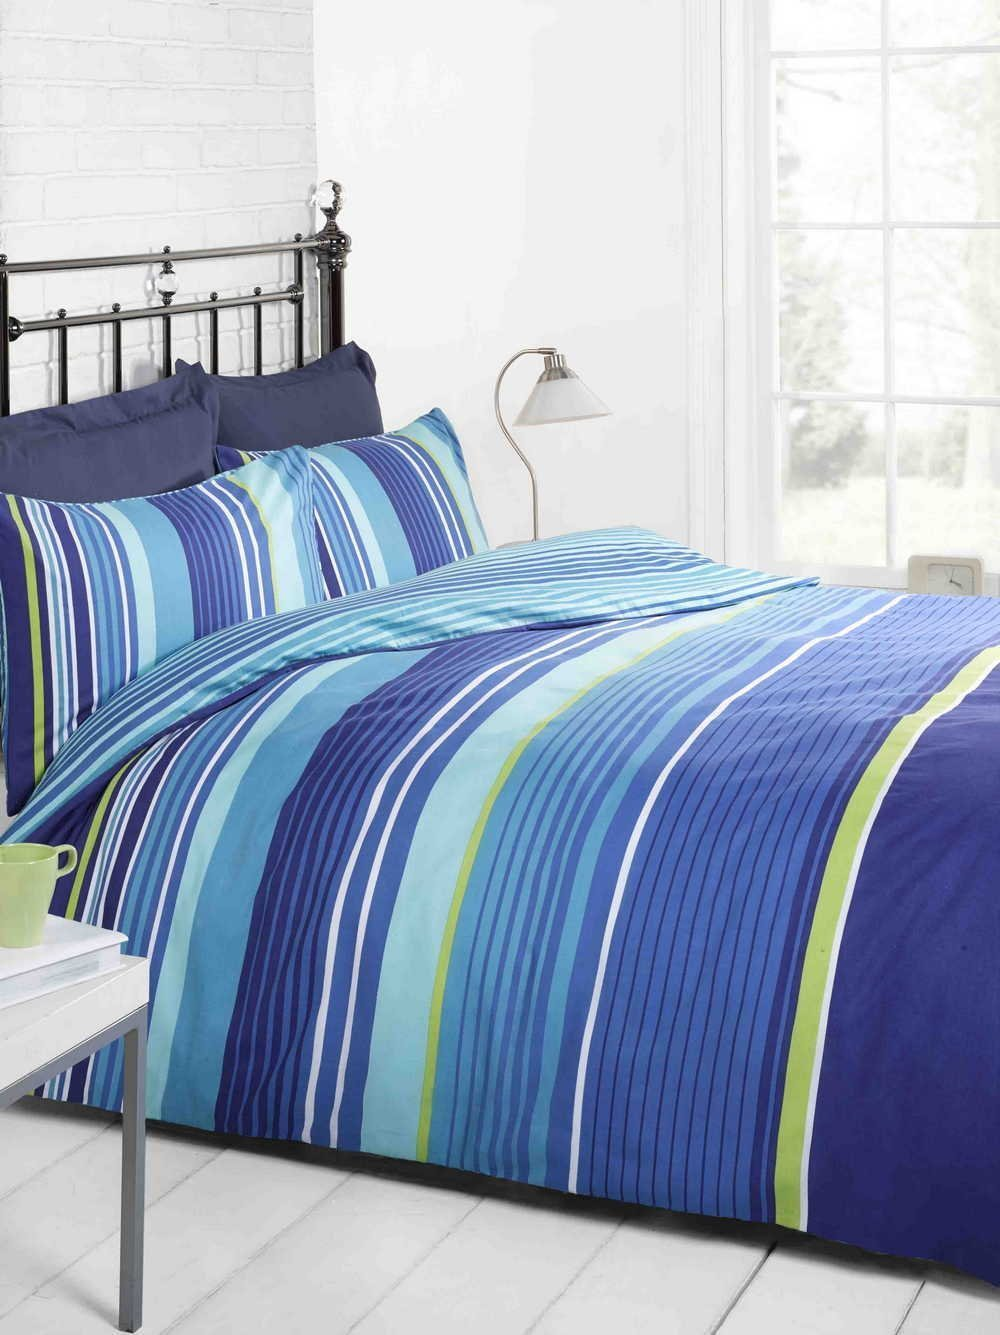 Bright blue bedding - Signature Striped Quilt Duvet Cover And Pillowcase Bedding Bed Set Navy Light Blue Green White Single Amazon Co Uk Kitchen Home